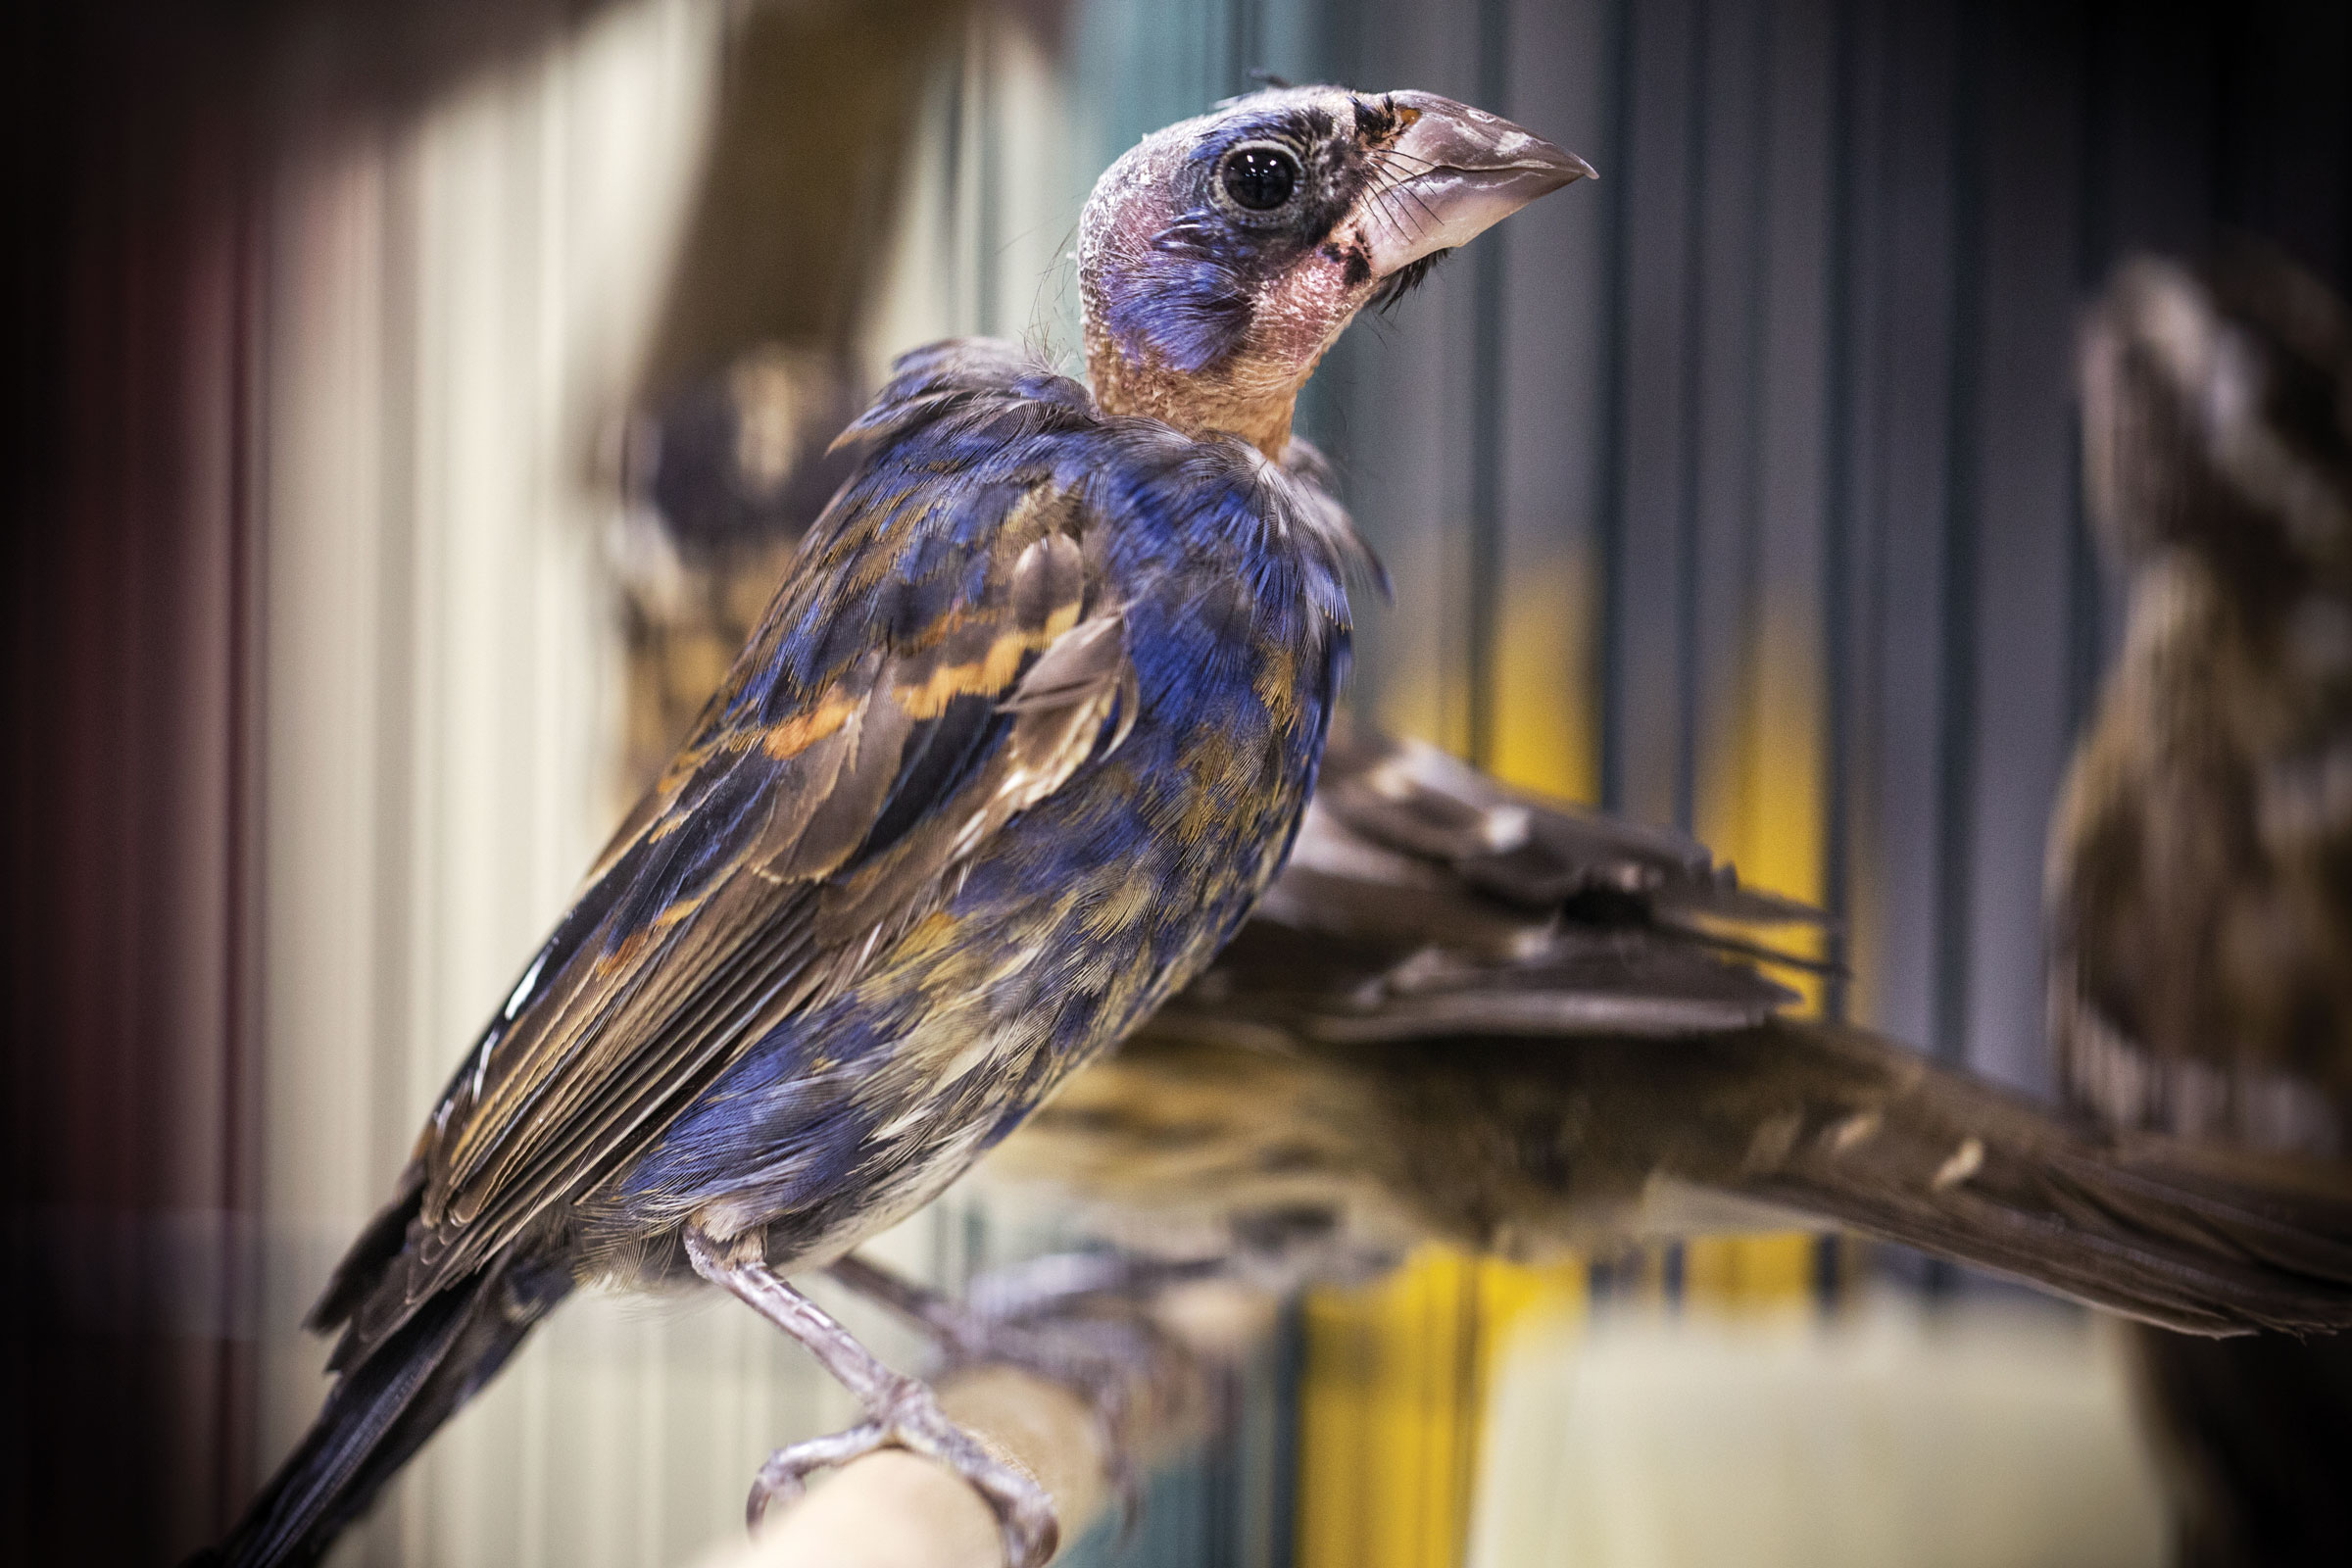 Lured birds, like this Blue Grosbeak, fall into a trap through a pitfall door. Traffickers often keep the birds in terrible conditions, leading to emaciation and feather loss so severe that some birds can no longer fly. Karine Aigner